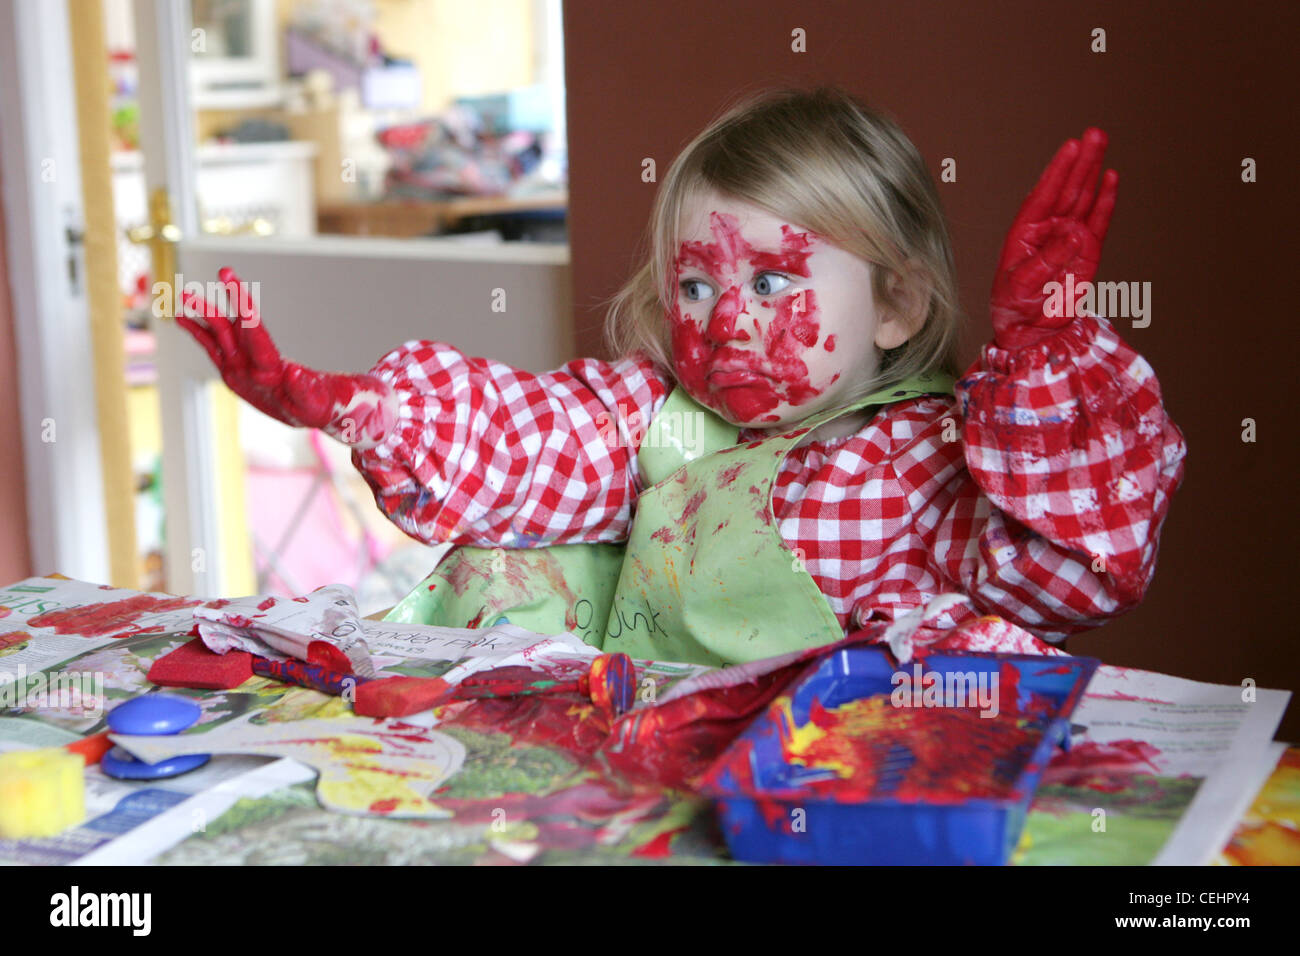 2 Year-Old girl enjoying making a mess with colourful paints at home. - Stock Image